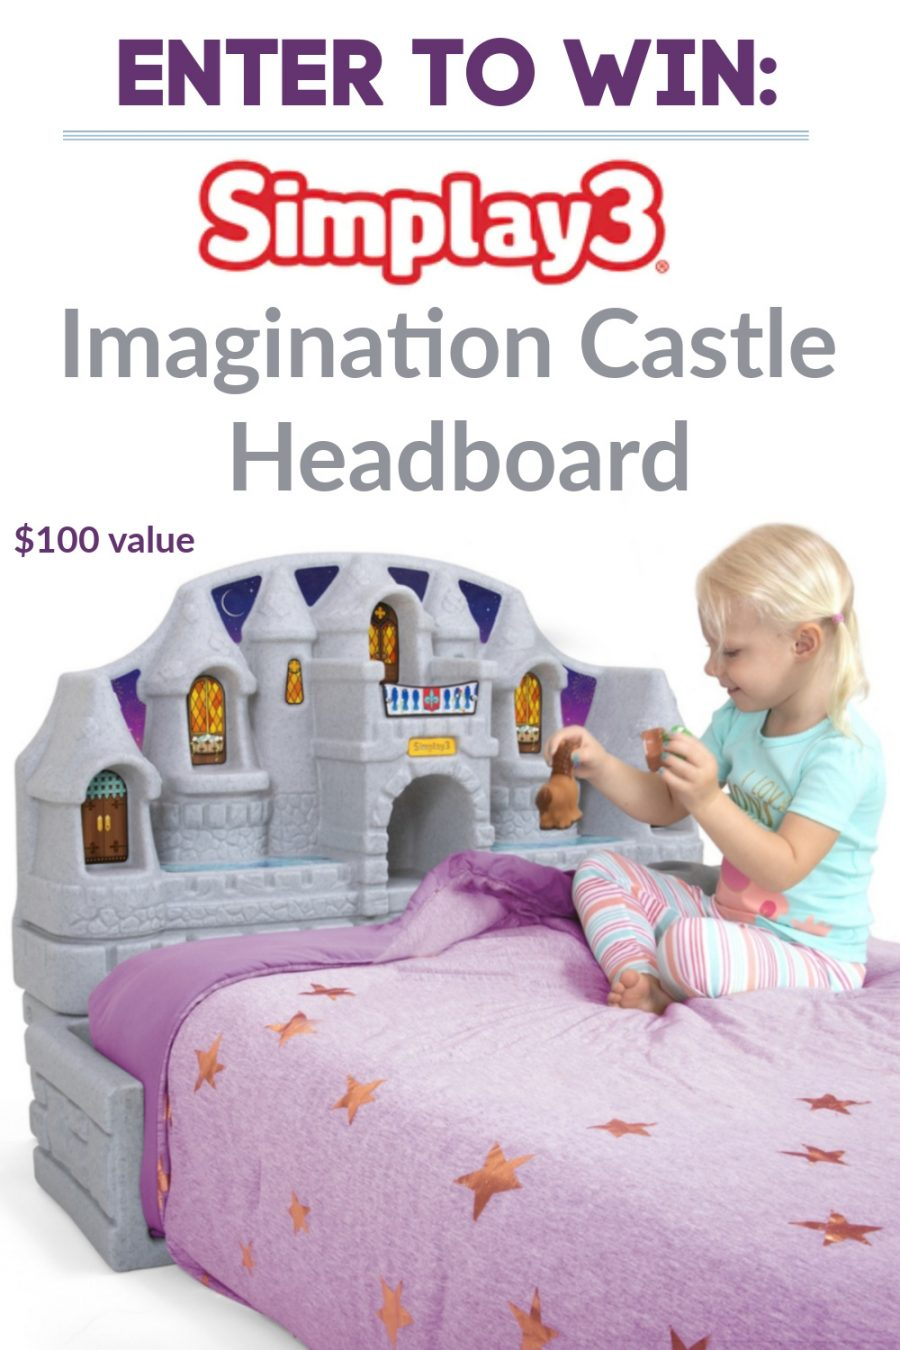 Simplay3 Imagination Castle Headboard Giveaway